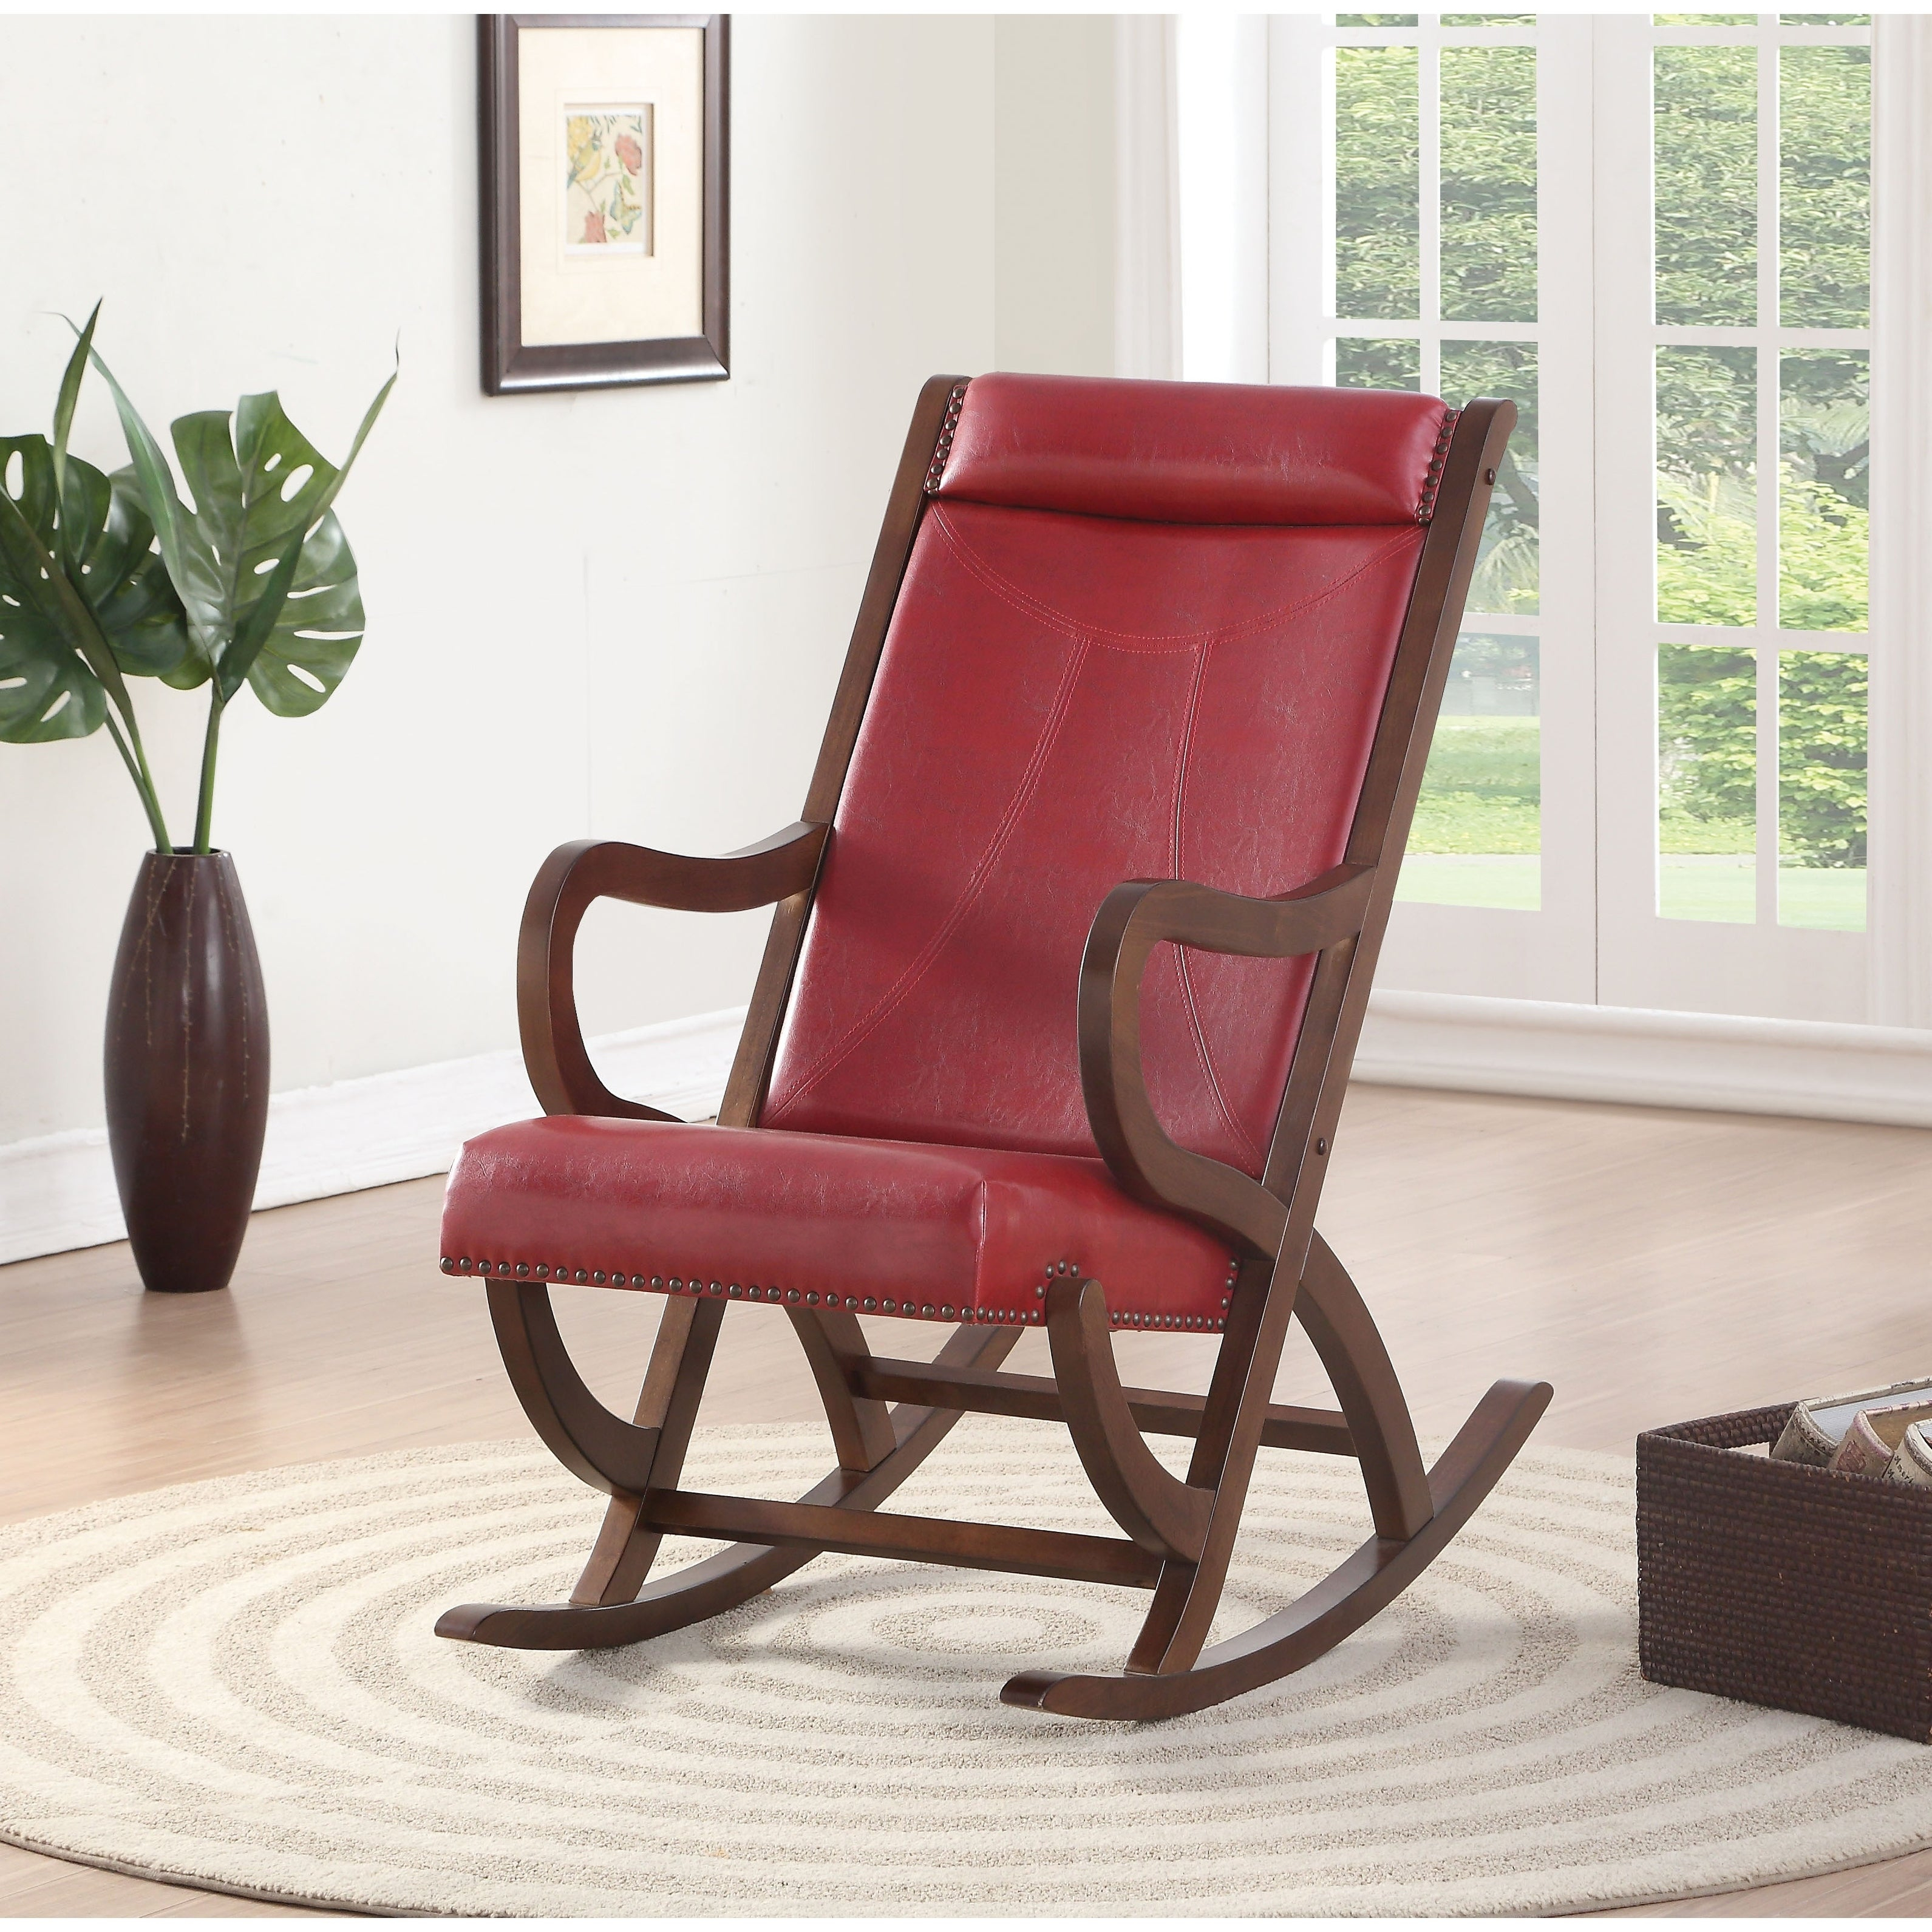 Faux Leather Upholstered Wooden Rocking Chair With Looped Arms, Brown And  Red Regarding Dark Oak Wooden Padded Faux Leather Rocking Chairs (#8 of 20)